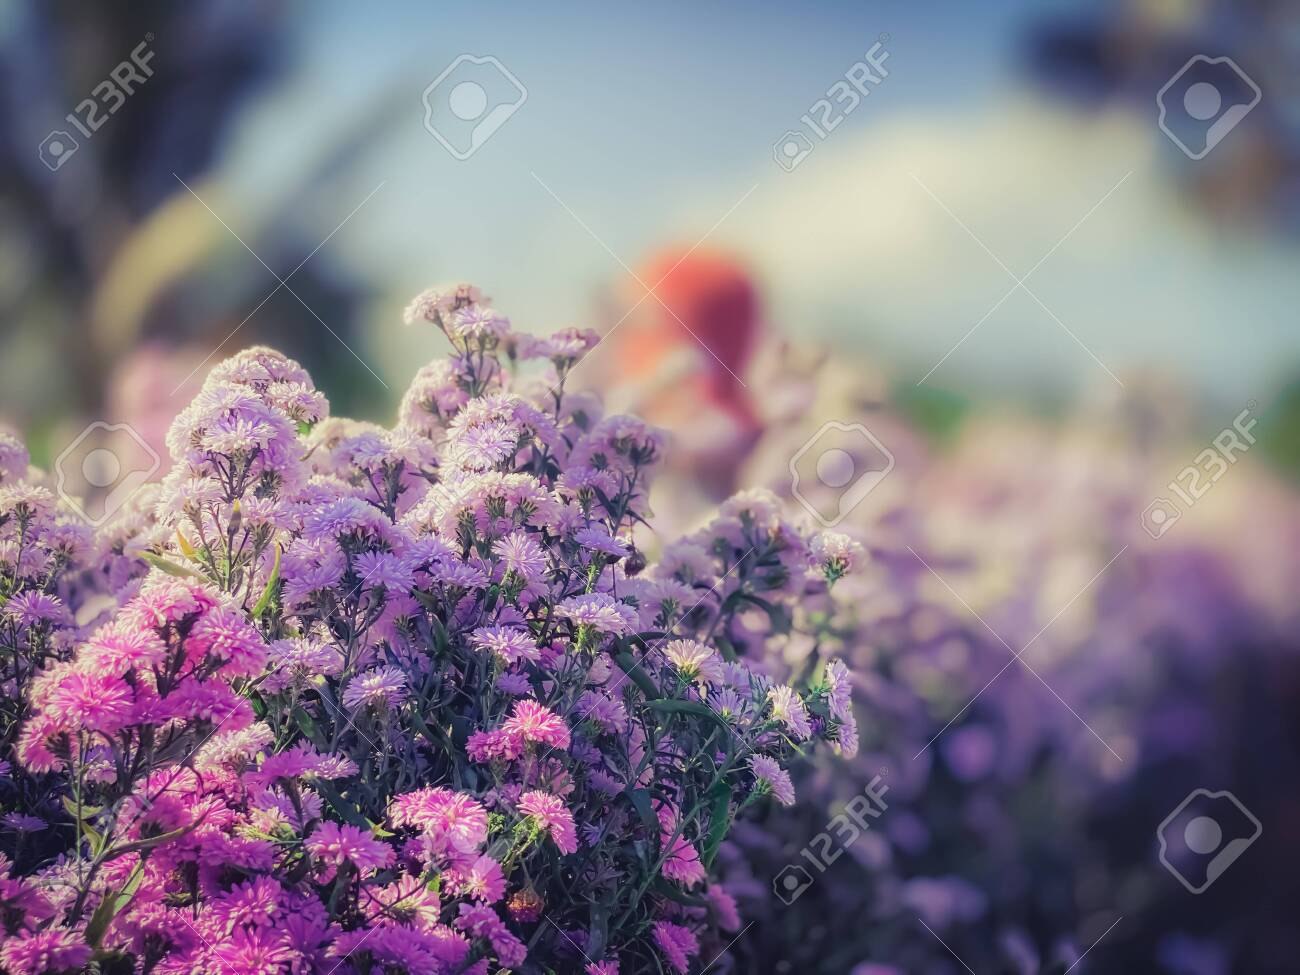 Beautiful Flowers In Blooming Field In The Farm Nature Wallpaper Stock Photo Picture And Royalty Free Image Image 138458997